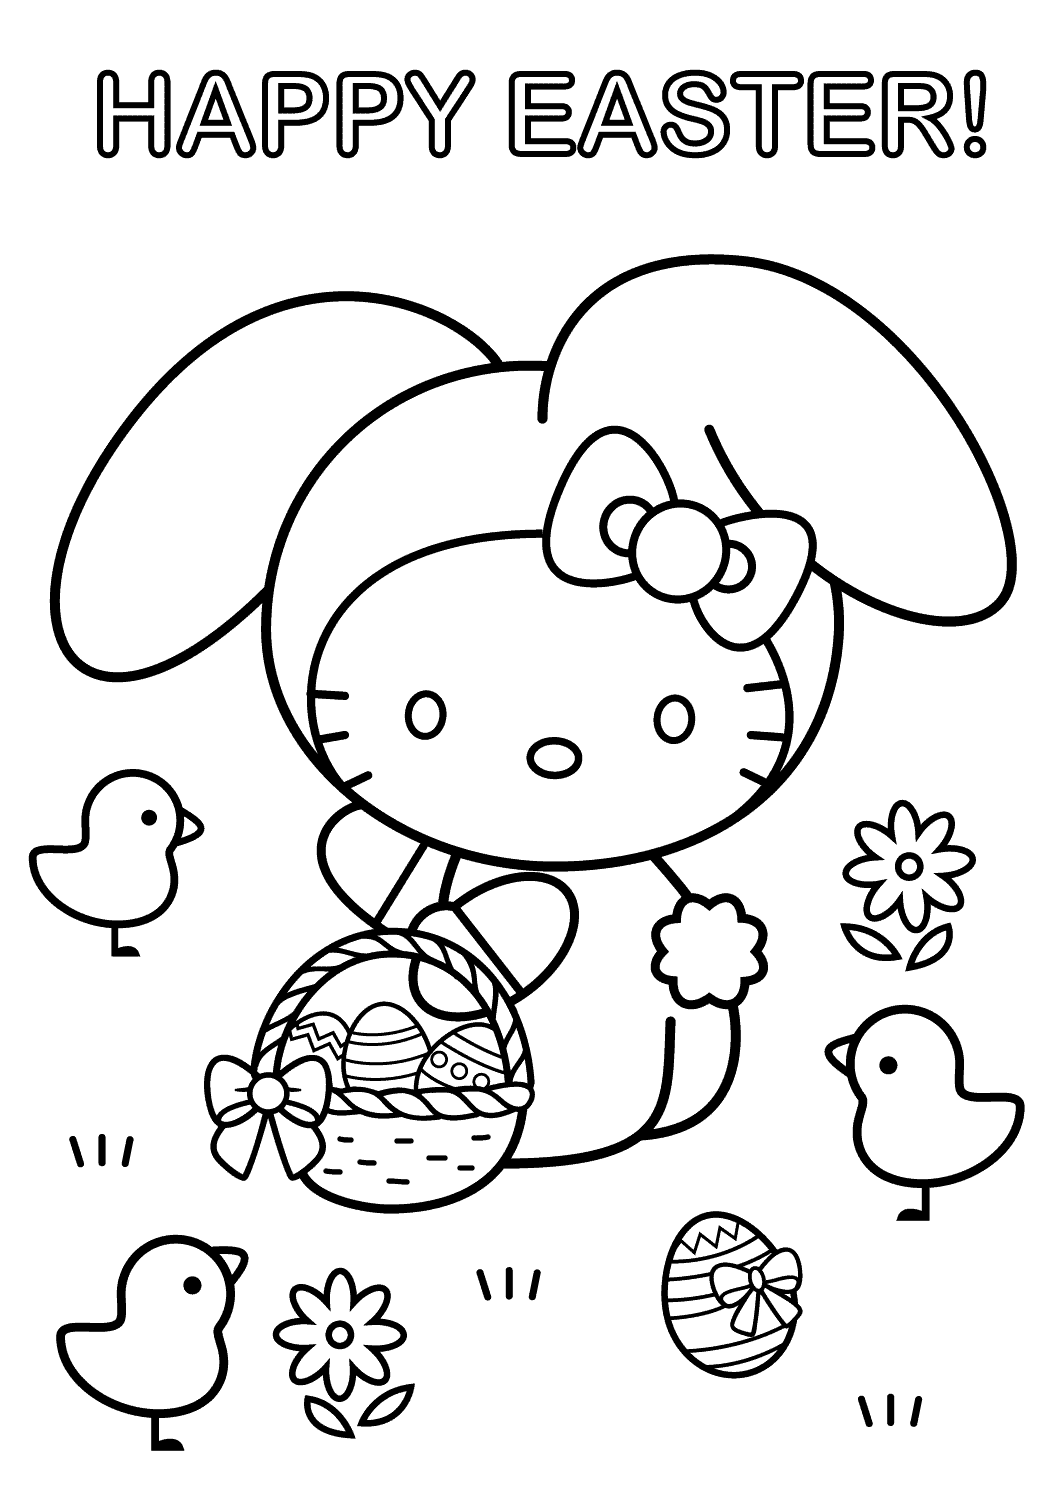 easter printable coloring pages 15 printable easter coloring pages holiday vault pages easter coloring printable